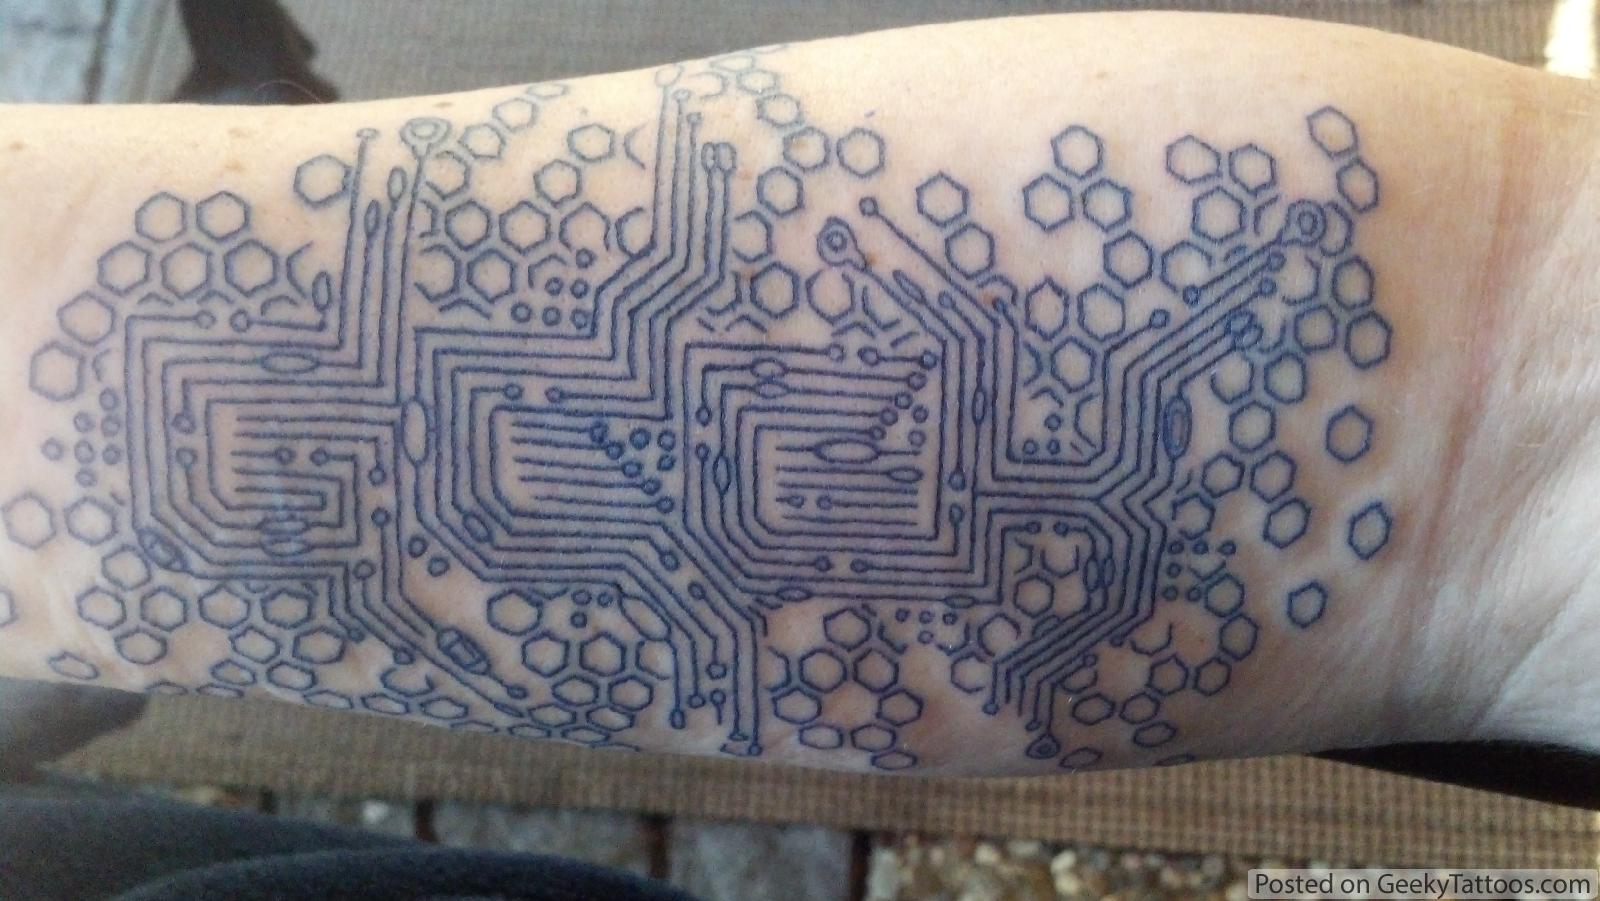 e2a5bba7f Eric Johnson - Tattoo submission - The Geek Virus